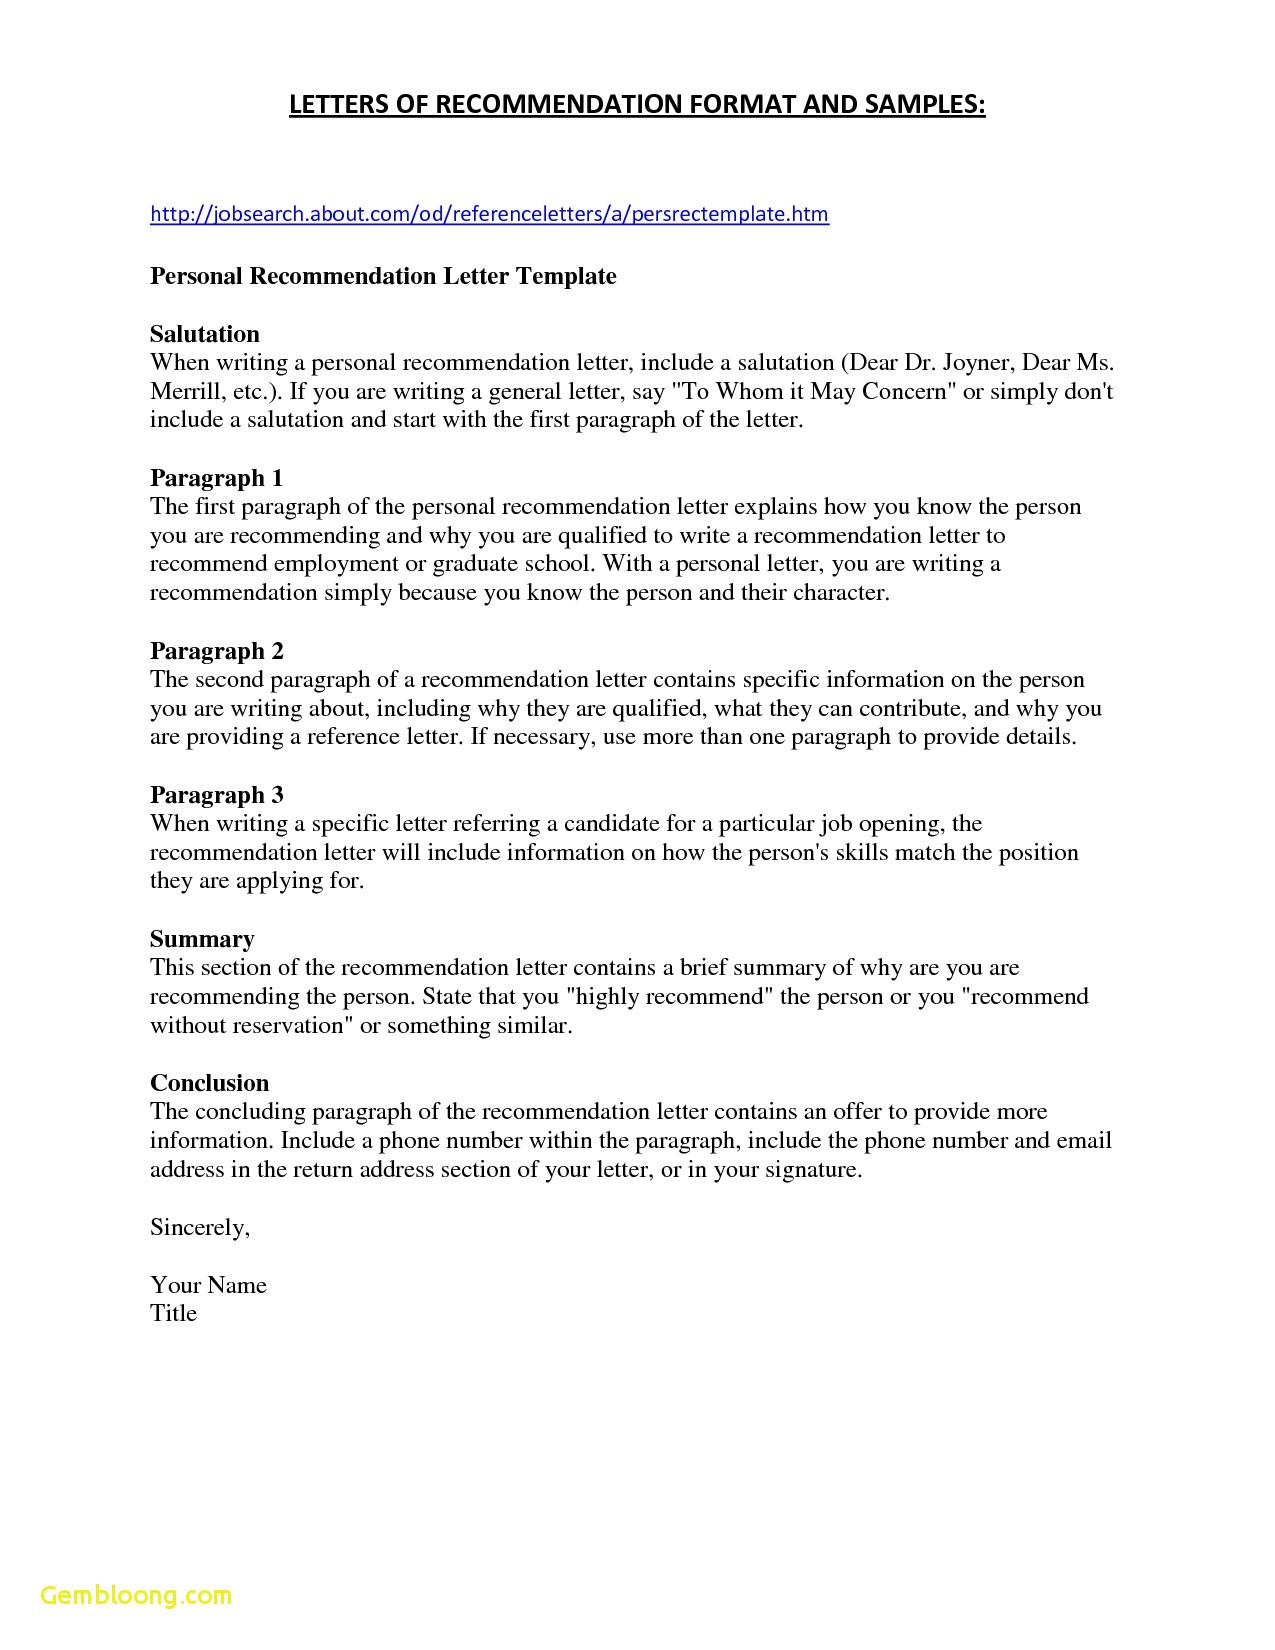 letter or recommendation template example-Letter Re mendation Template for College Admission New College Admission Resume Sample Download Sample Reference Letter 13-h